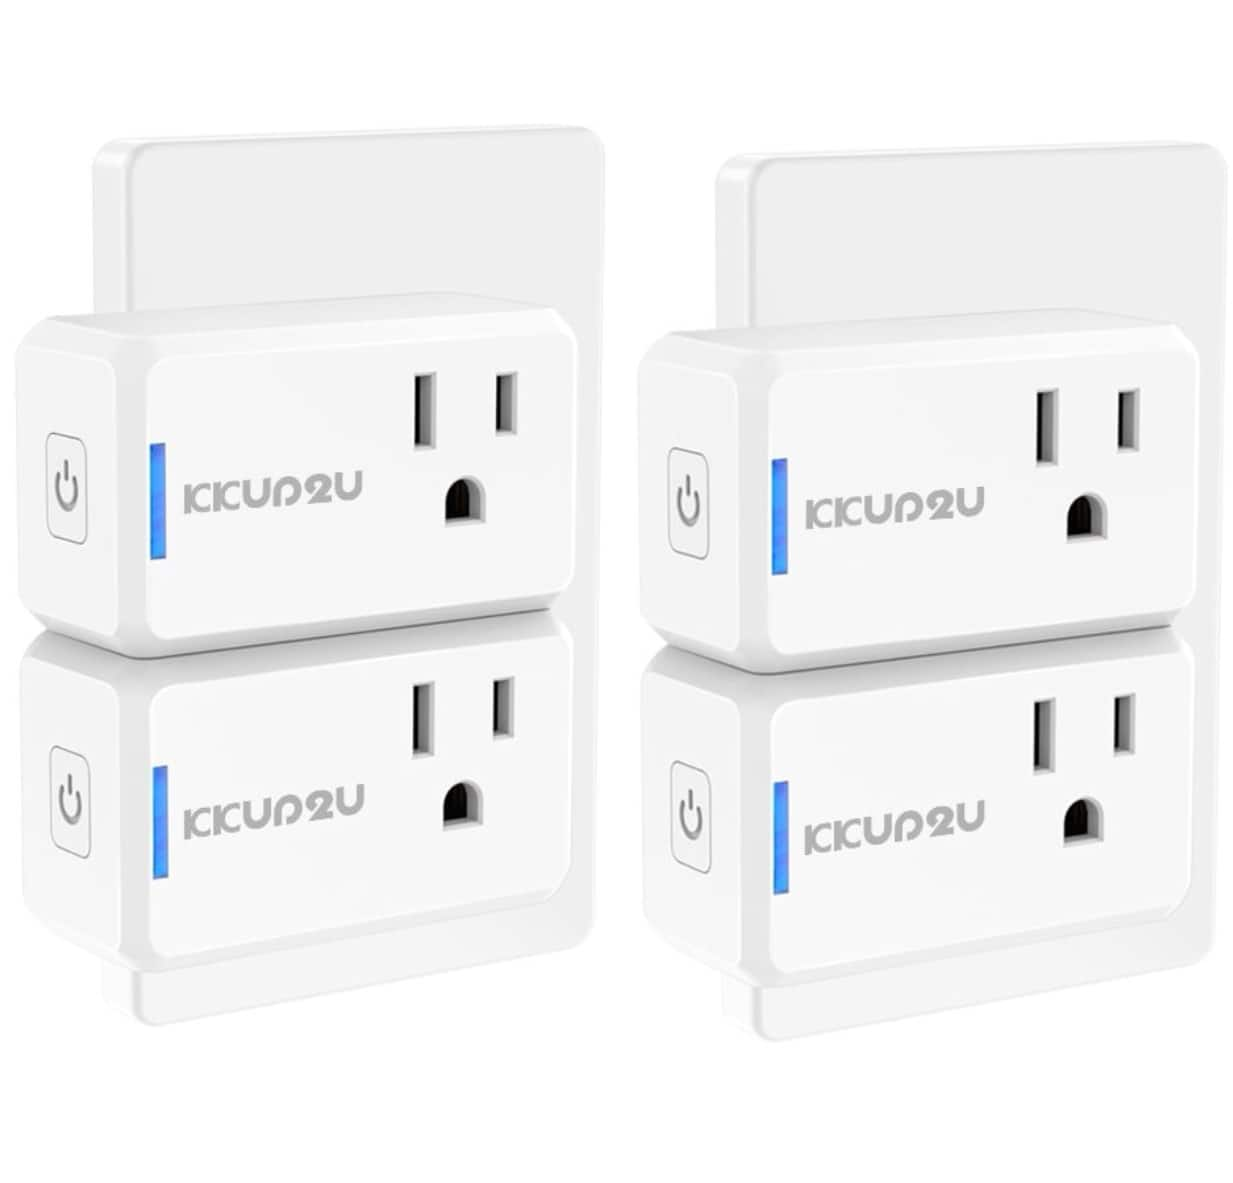 KKUP2U Smart Plug Upgraded Mini WiFi Smart Socket Outlet Work with Amazon Alexa Echo/Google Assistant and IFTTT, No Hub Required $7.76